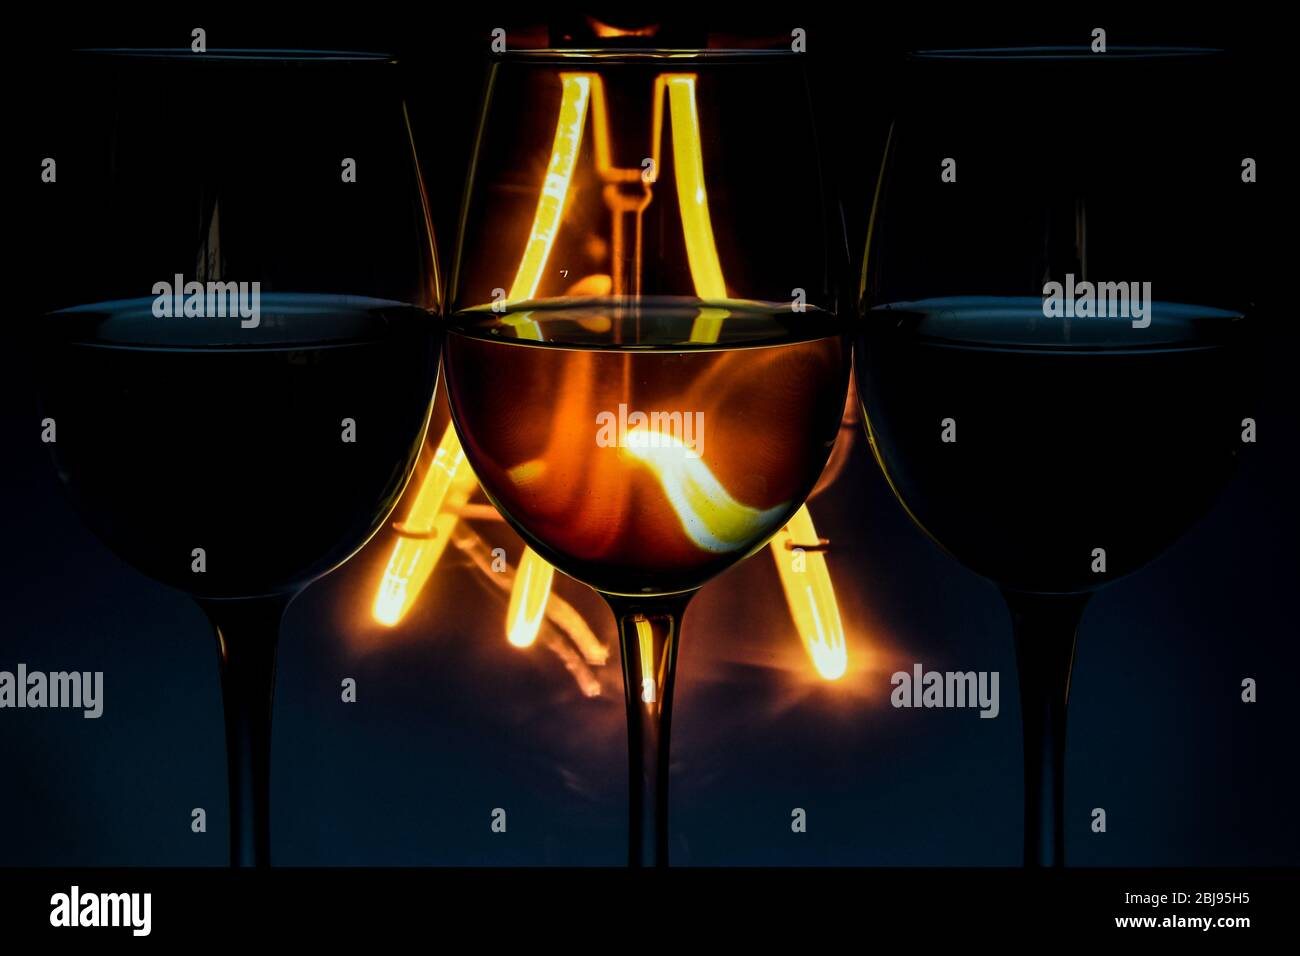 Three Wine Glasses In A Row With Dark Light Behind Set Of Three Wine Glasses With Red White And Rose Wine Banner Stock Photo 355473137 Alamy